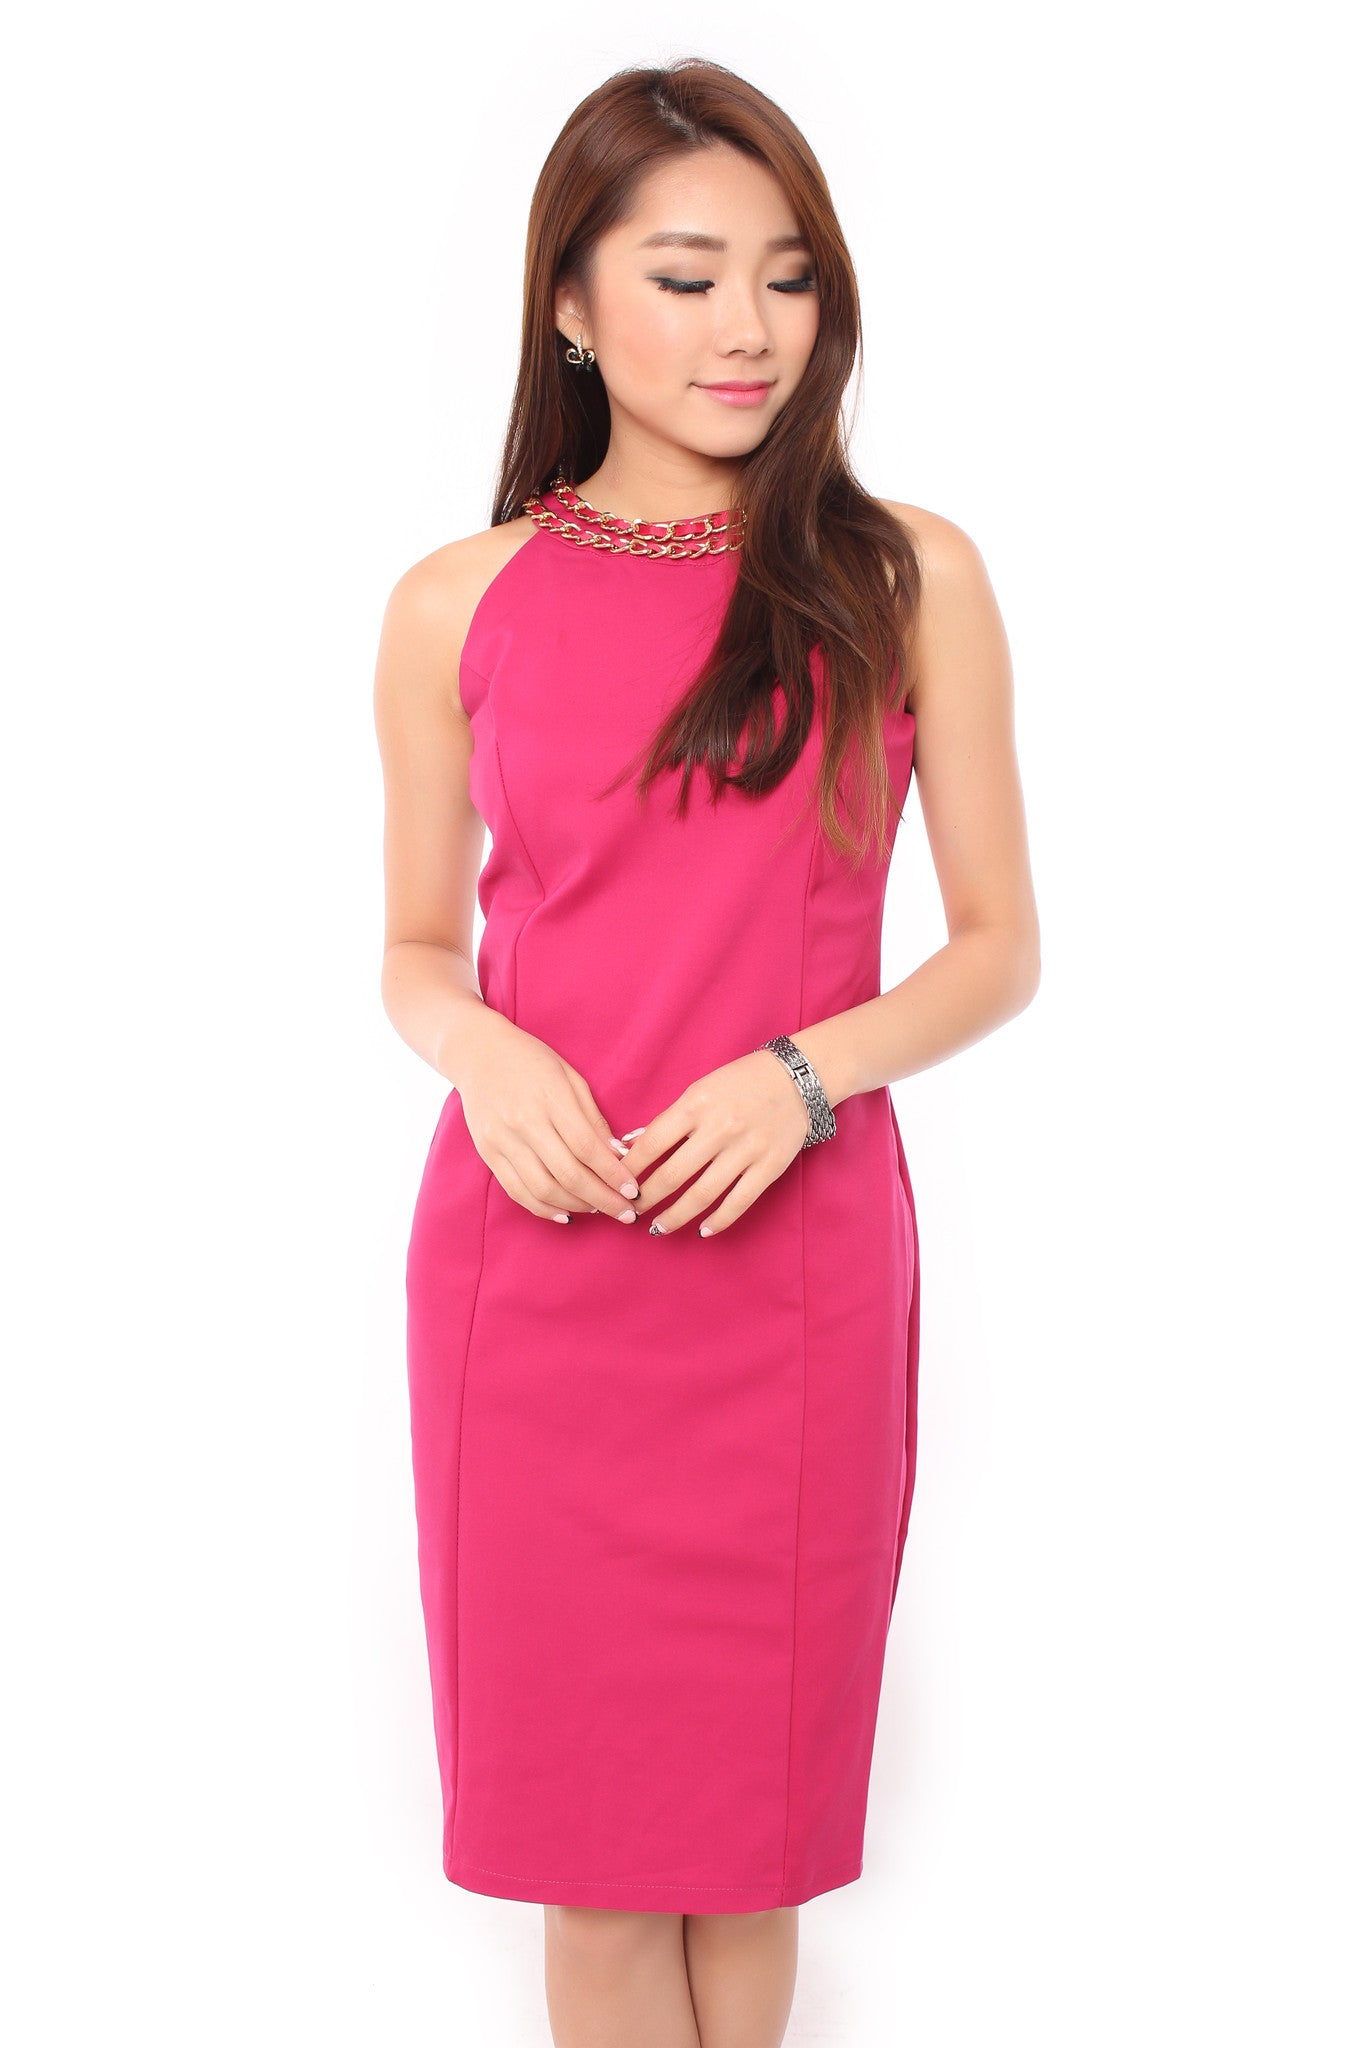 LUNAR CHAINED DRESS IN PINK